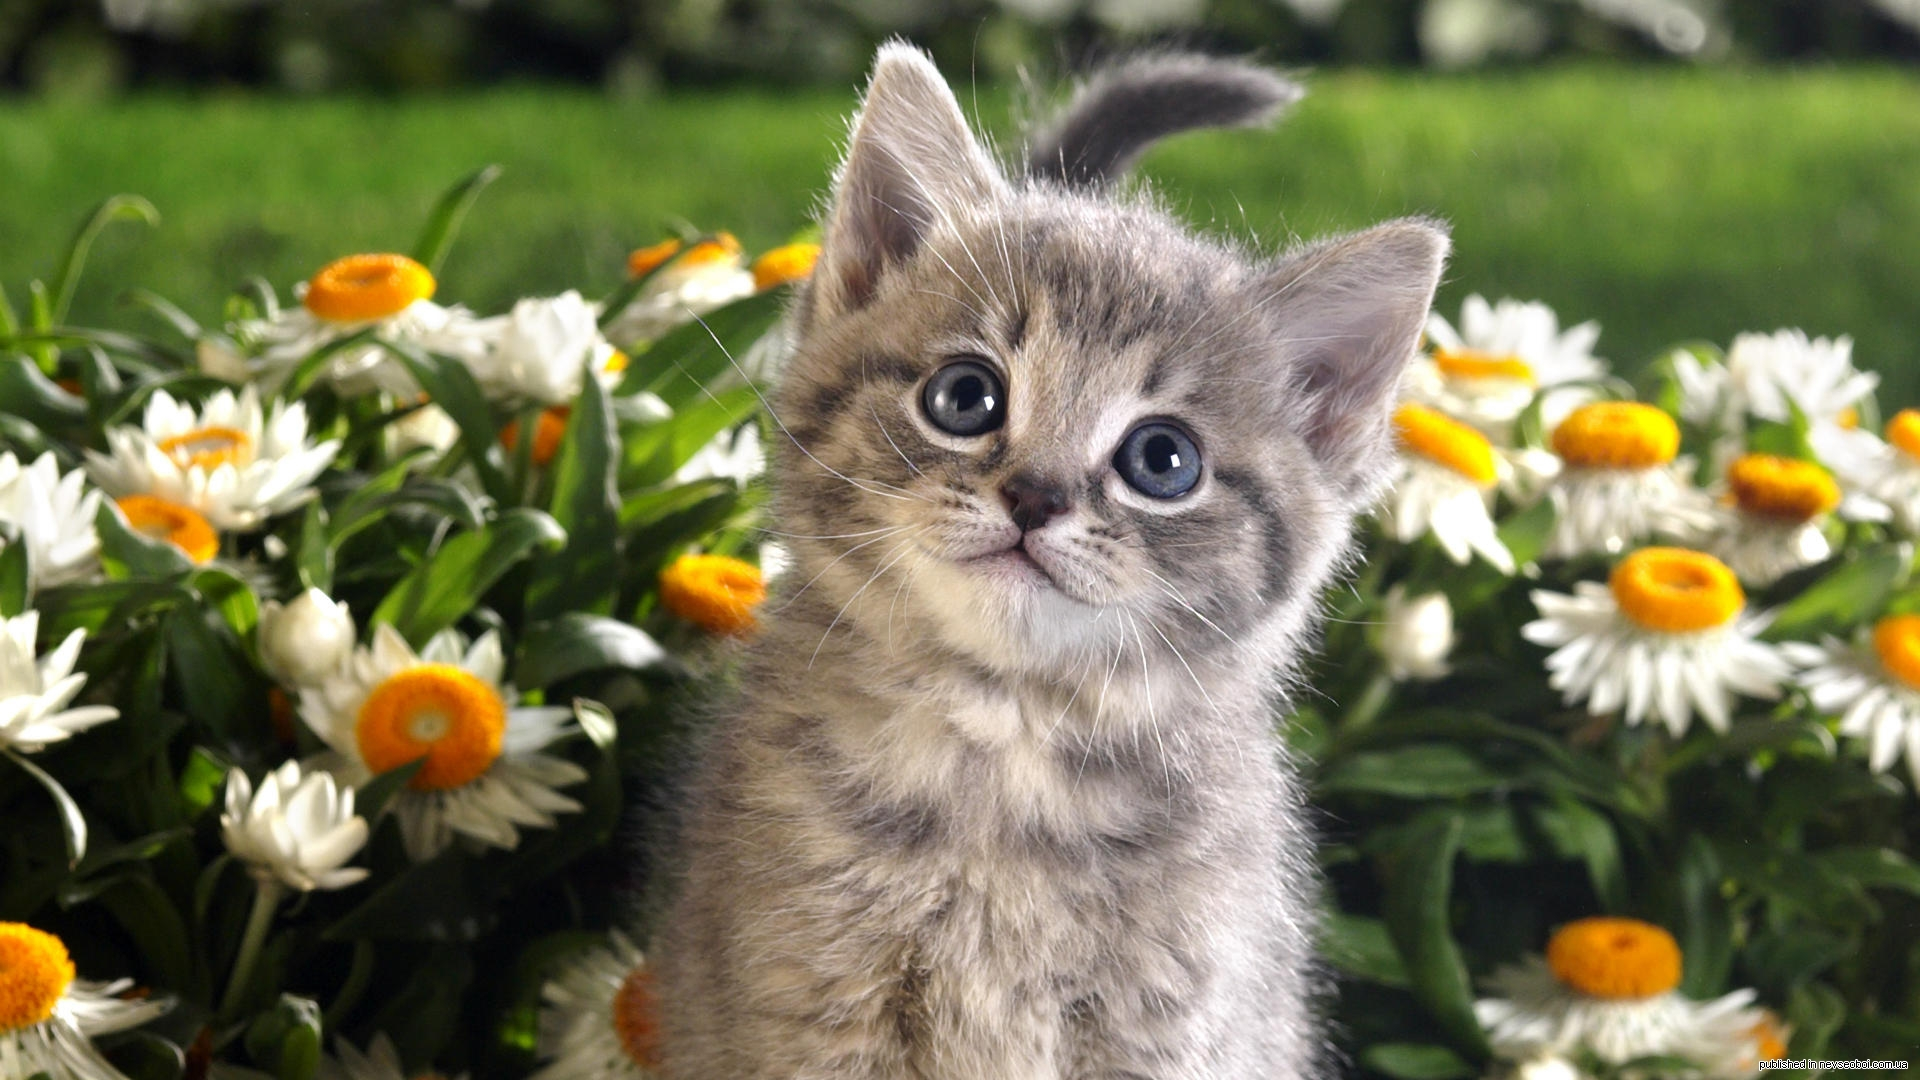 Animals Hdwallpaper Kitten Flowers Wallpaper #80087 - Resolution 1920x1080 px